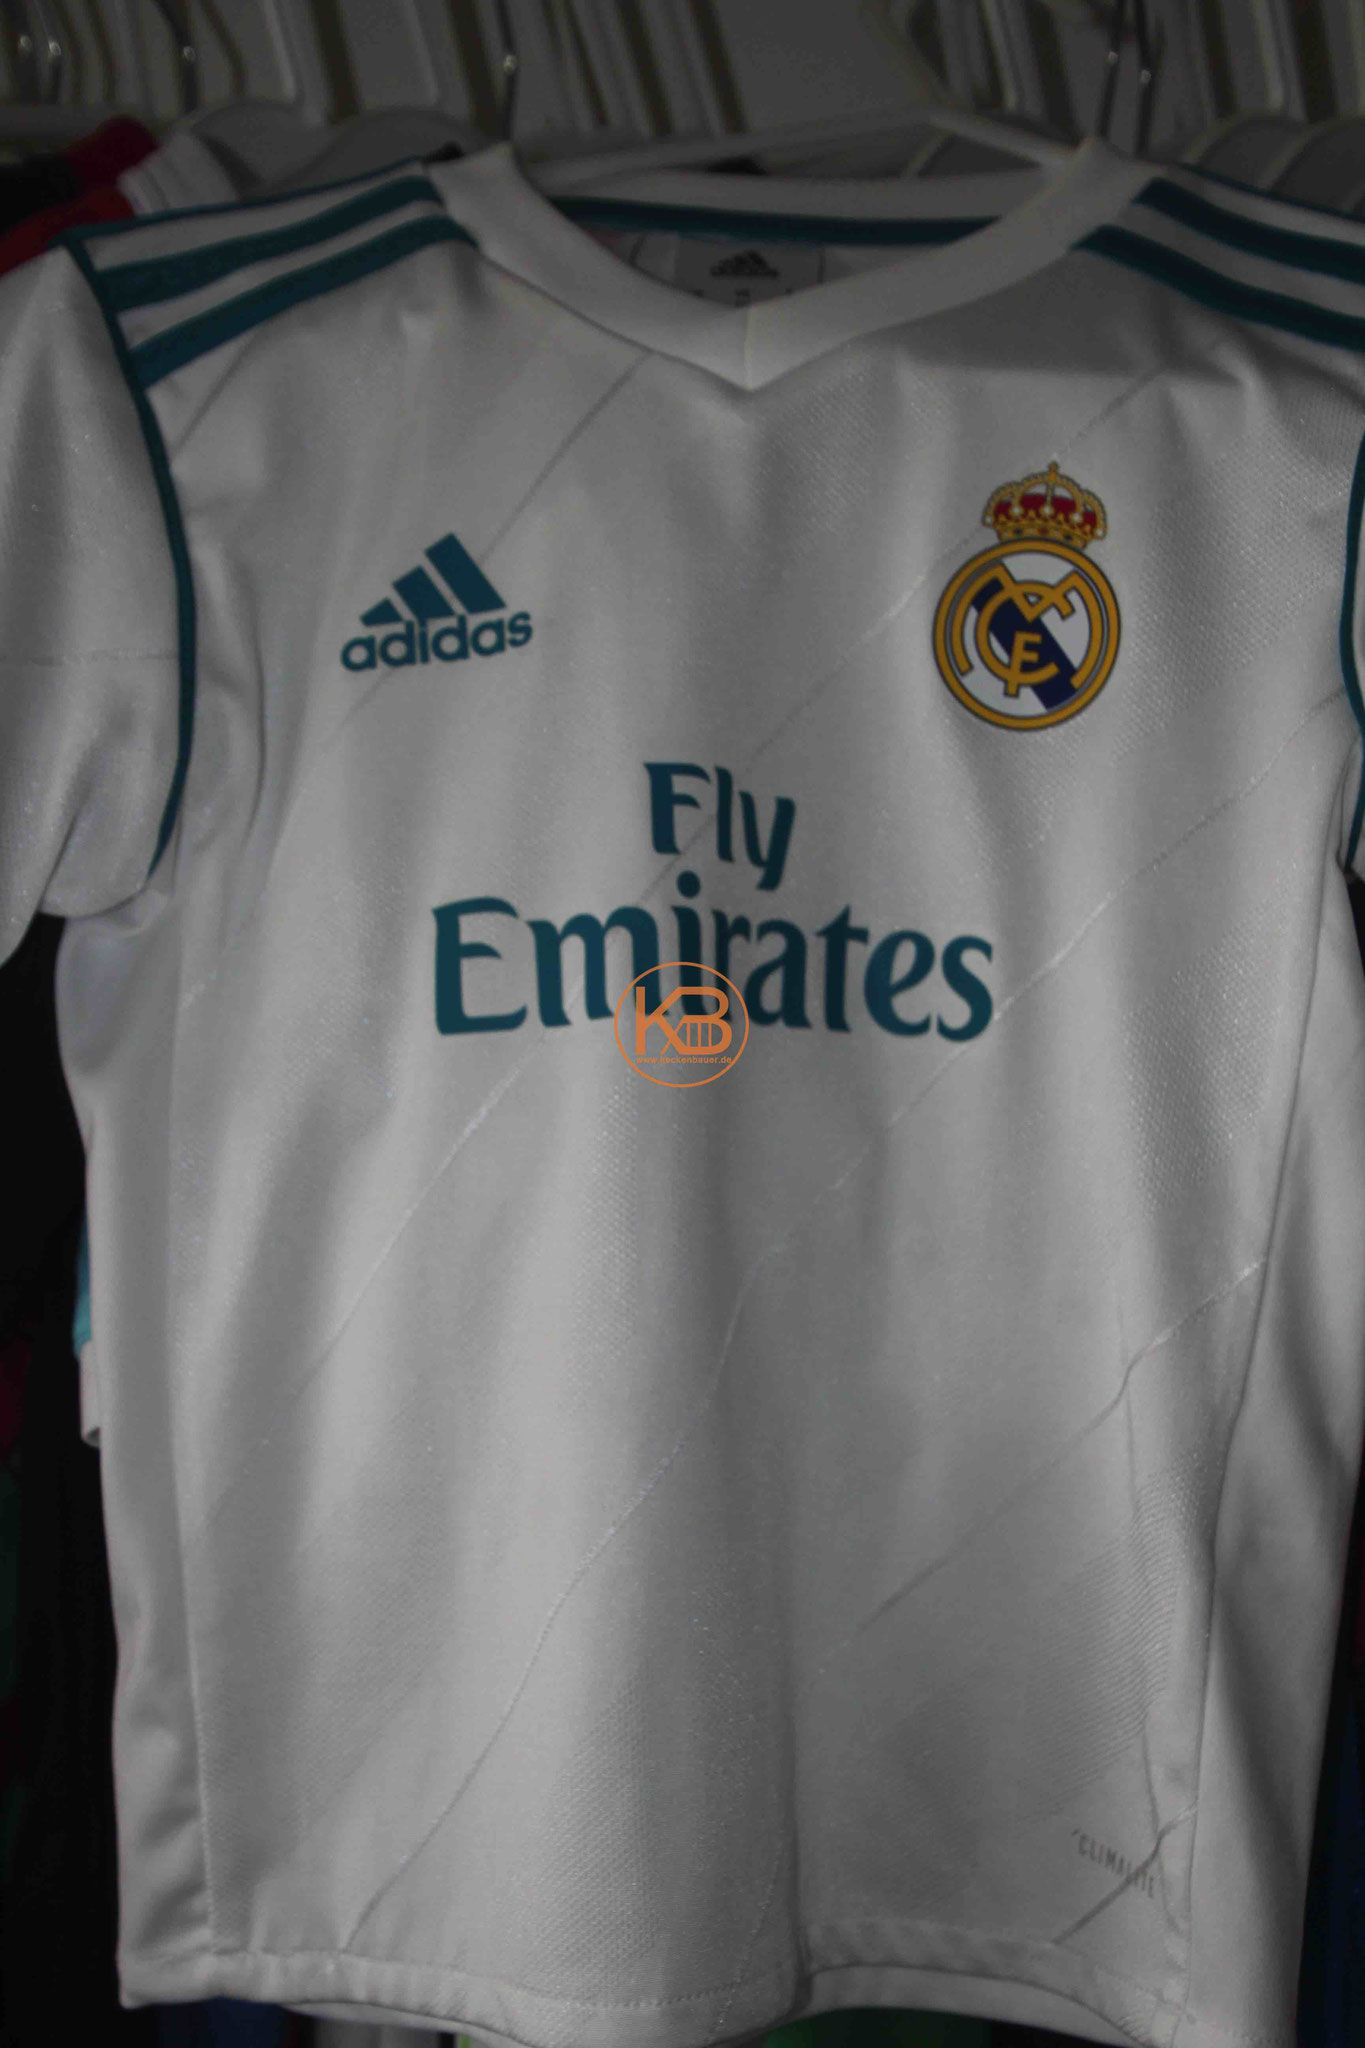 Adidas Trikot von Real Madrid